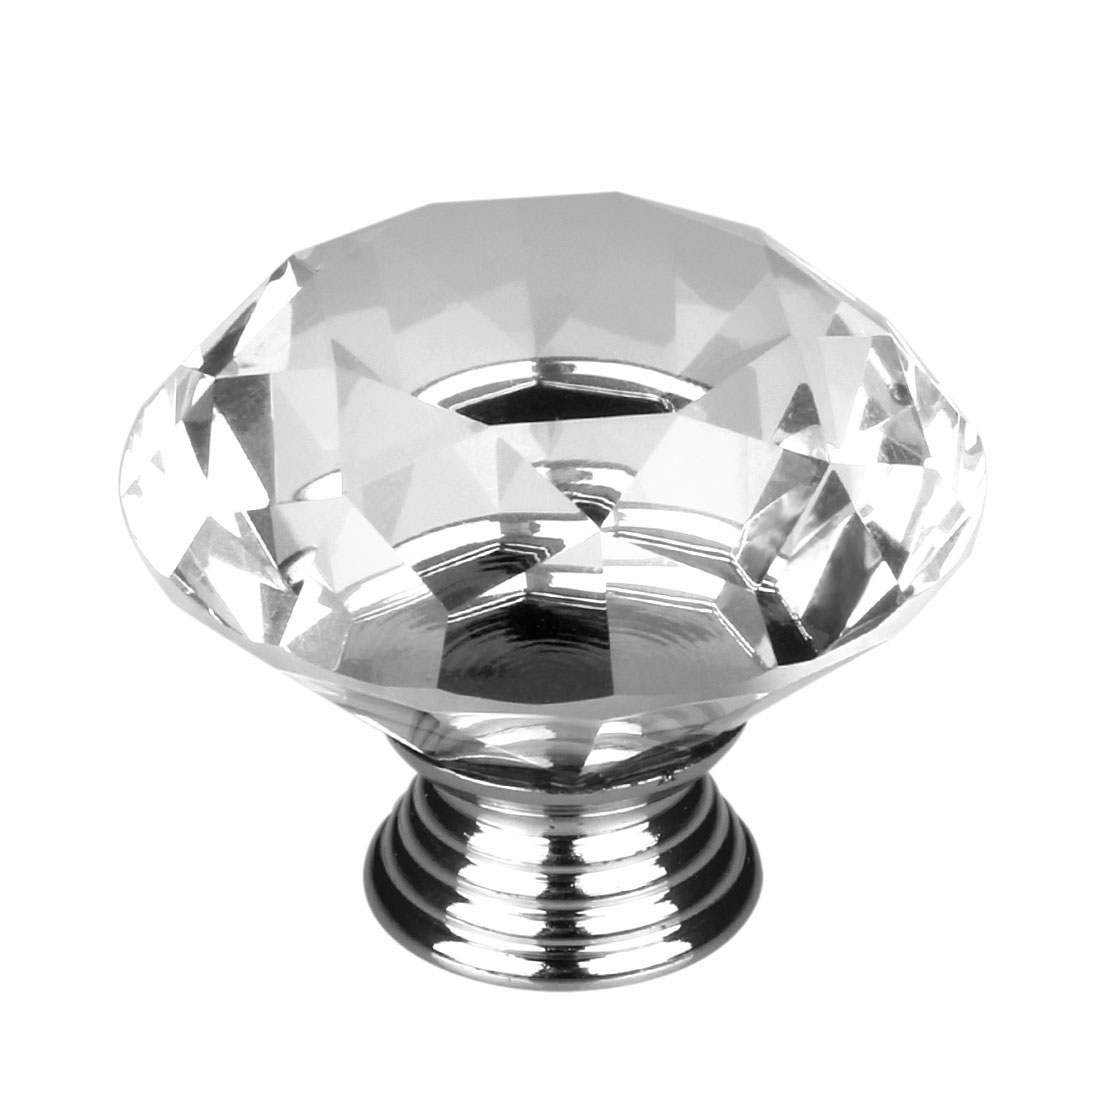 30mm Dia Diamond Shaped Crystal Glass Drawer Knobs Cabinet Pull Handle Clear